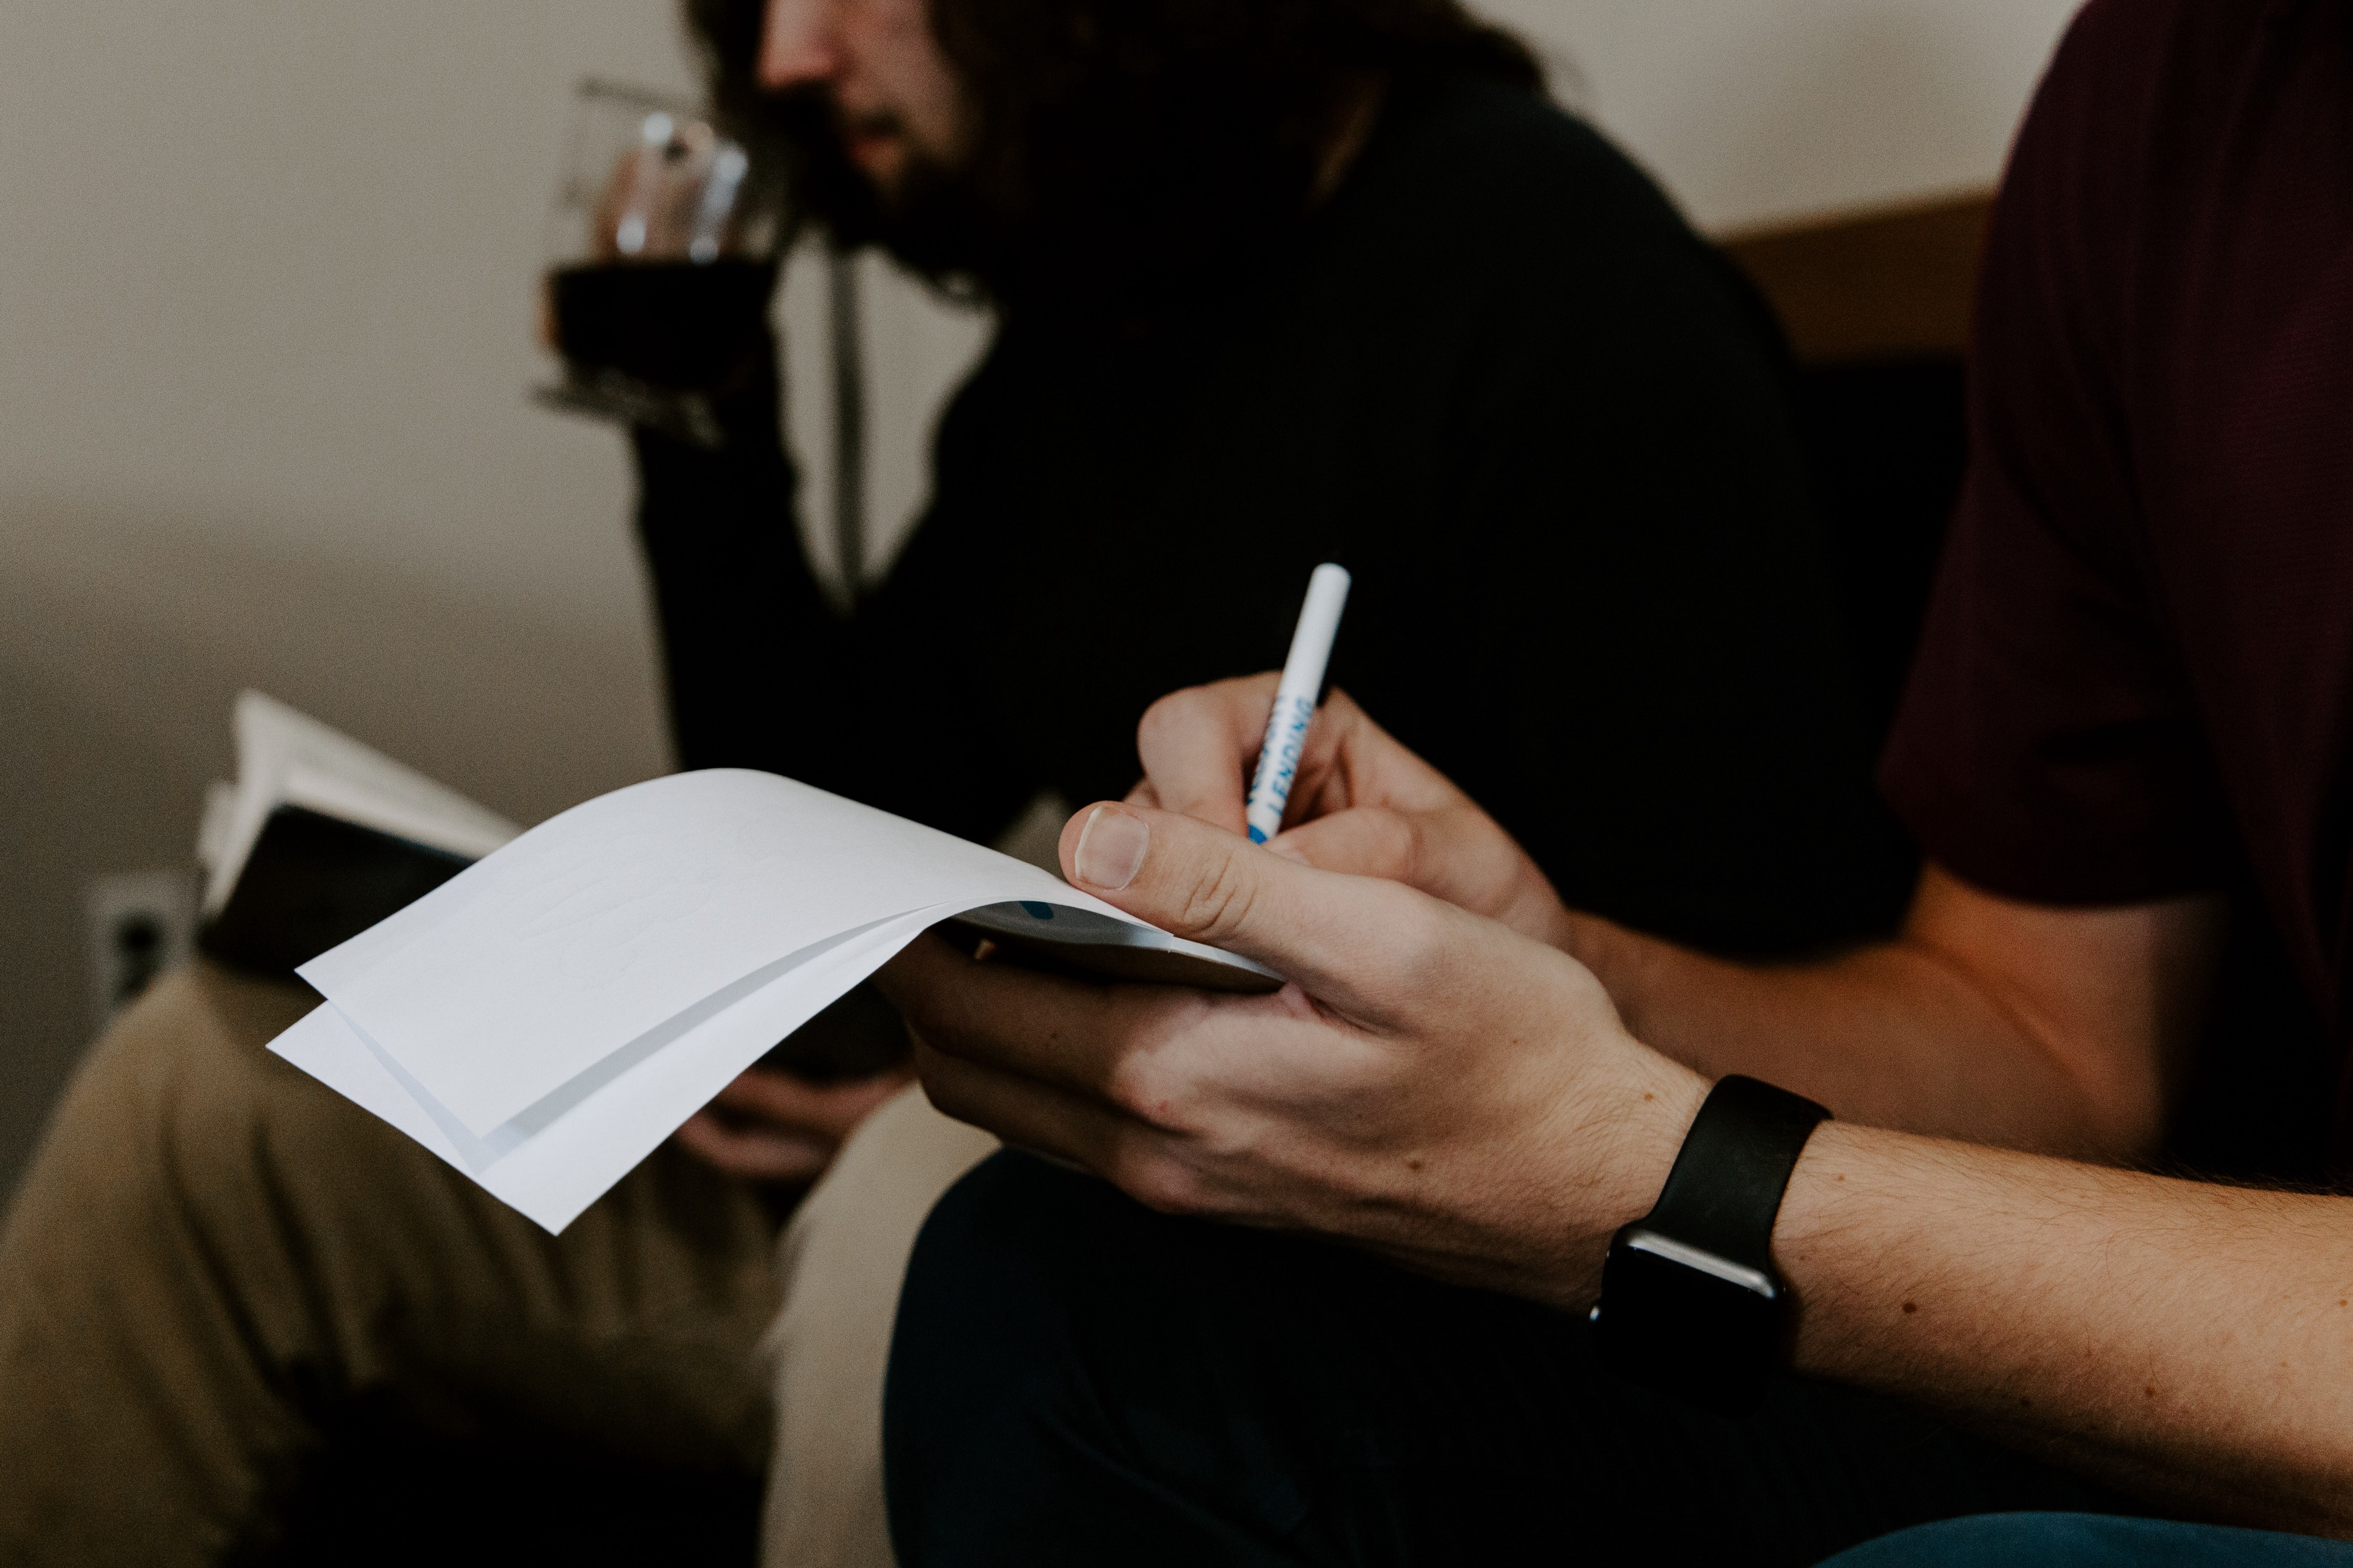 A man writing on a notepad in a cafe.